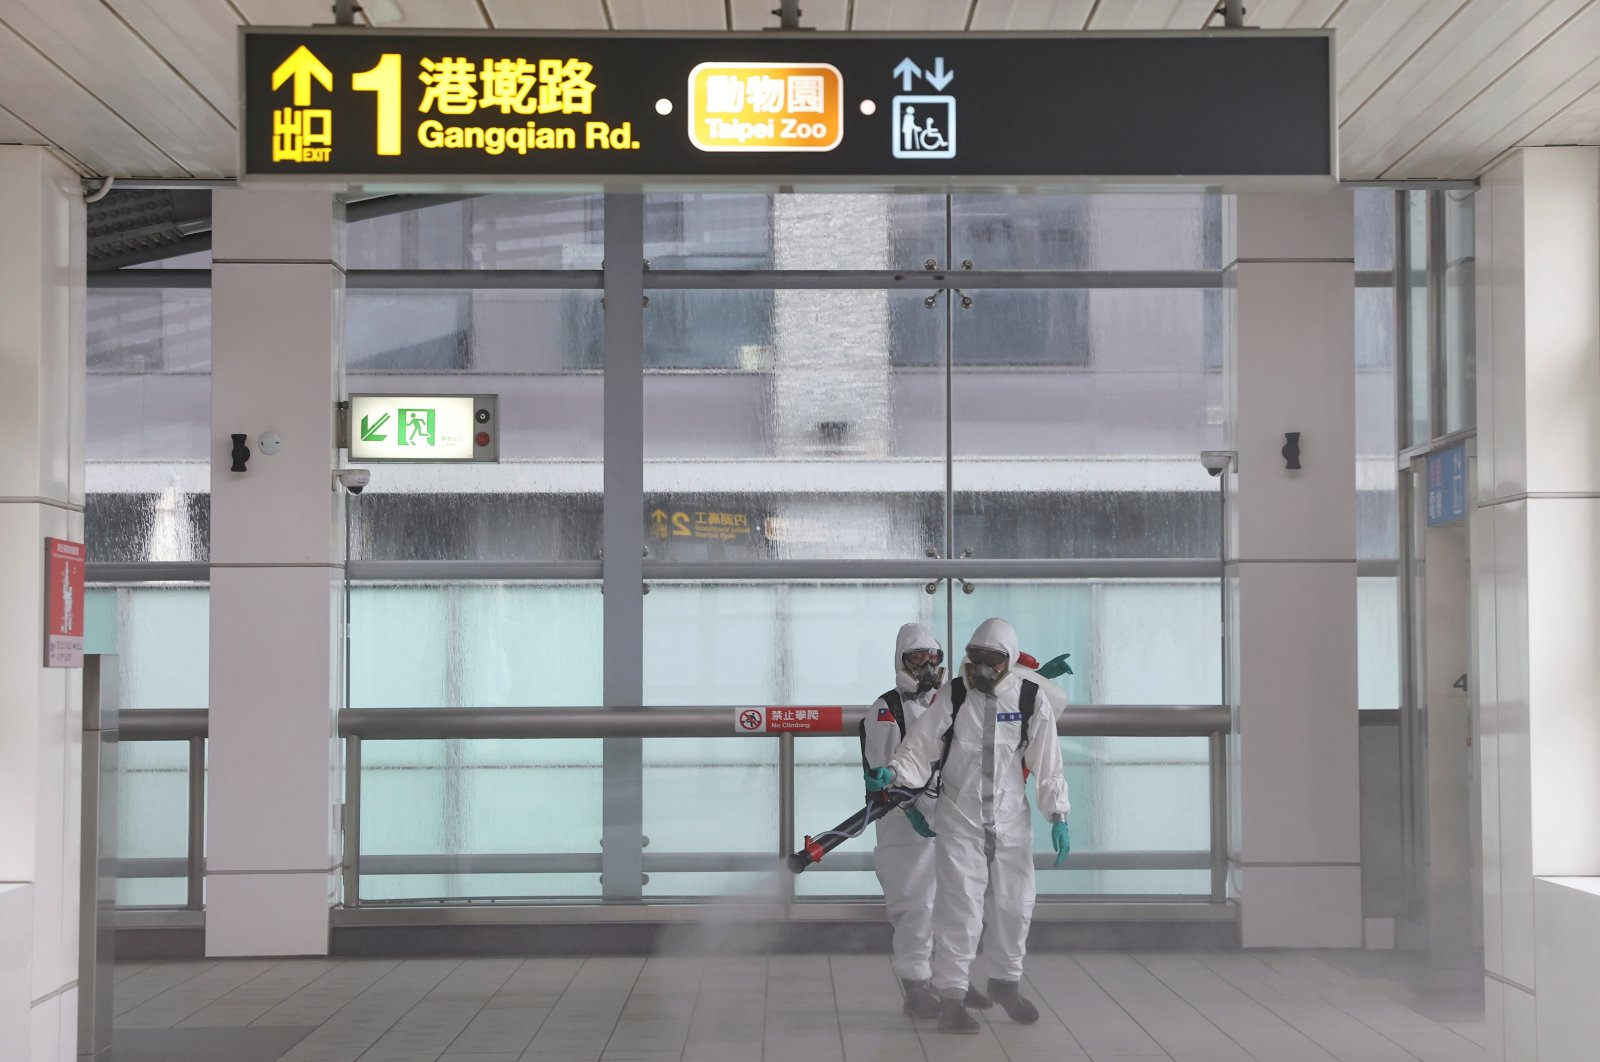 Soldiers in protective suits disinfect a metro station following a surge of COVID-19 infections in Taipei, Taiwan, May 19, 2021. (Reuters Photo)